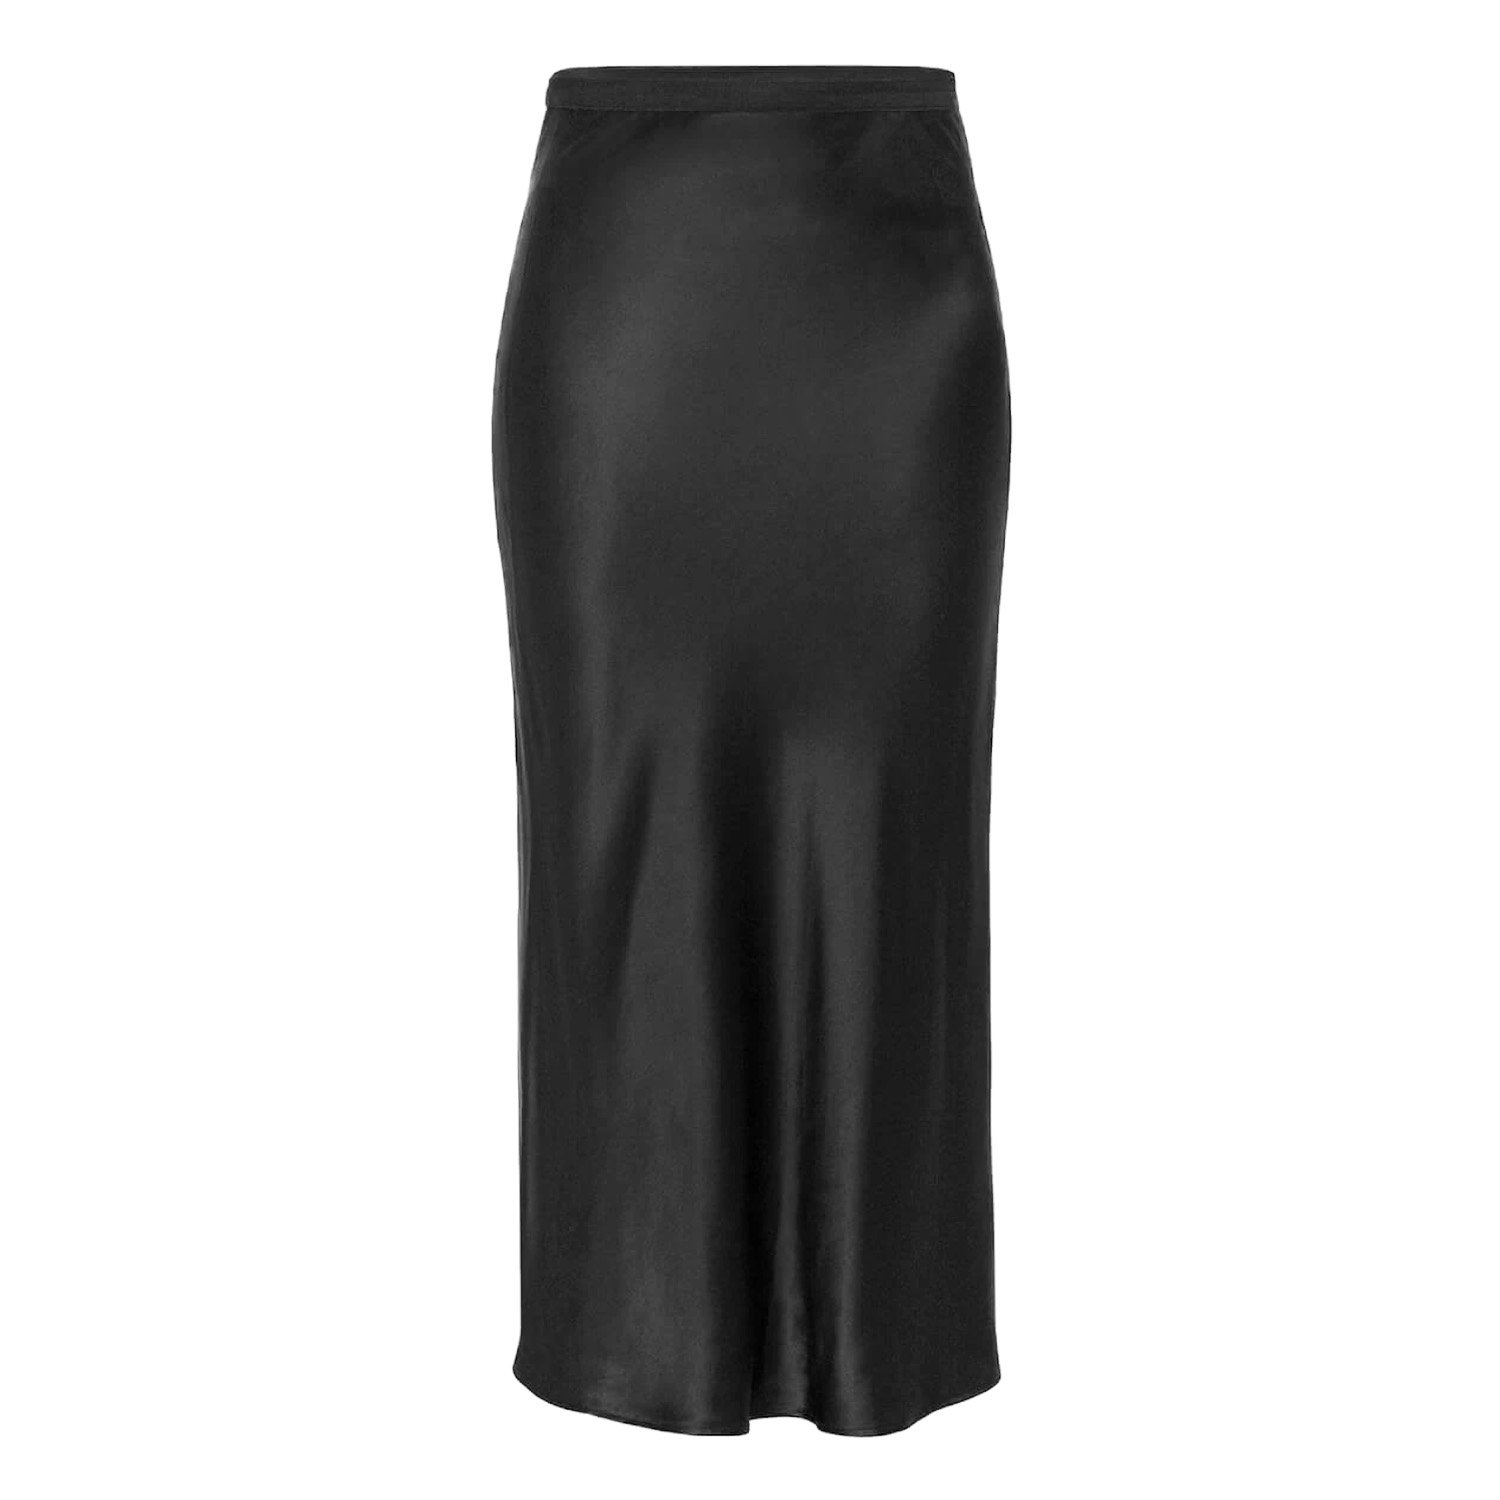 Anine Bing Black Slip Skirt